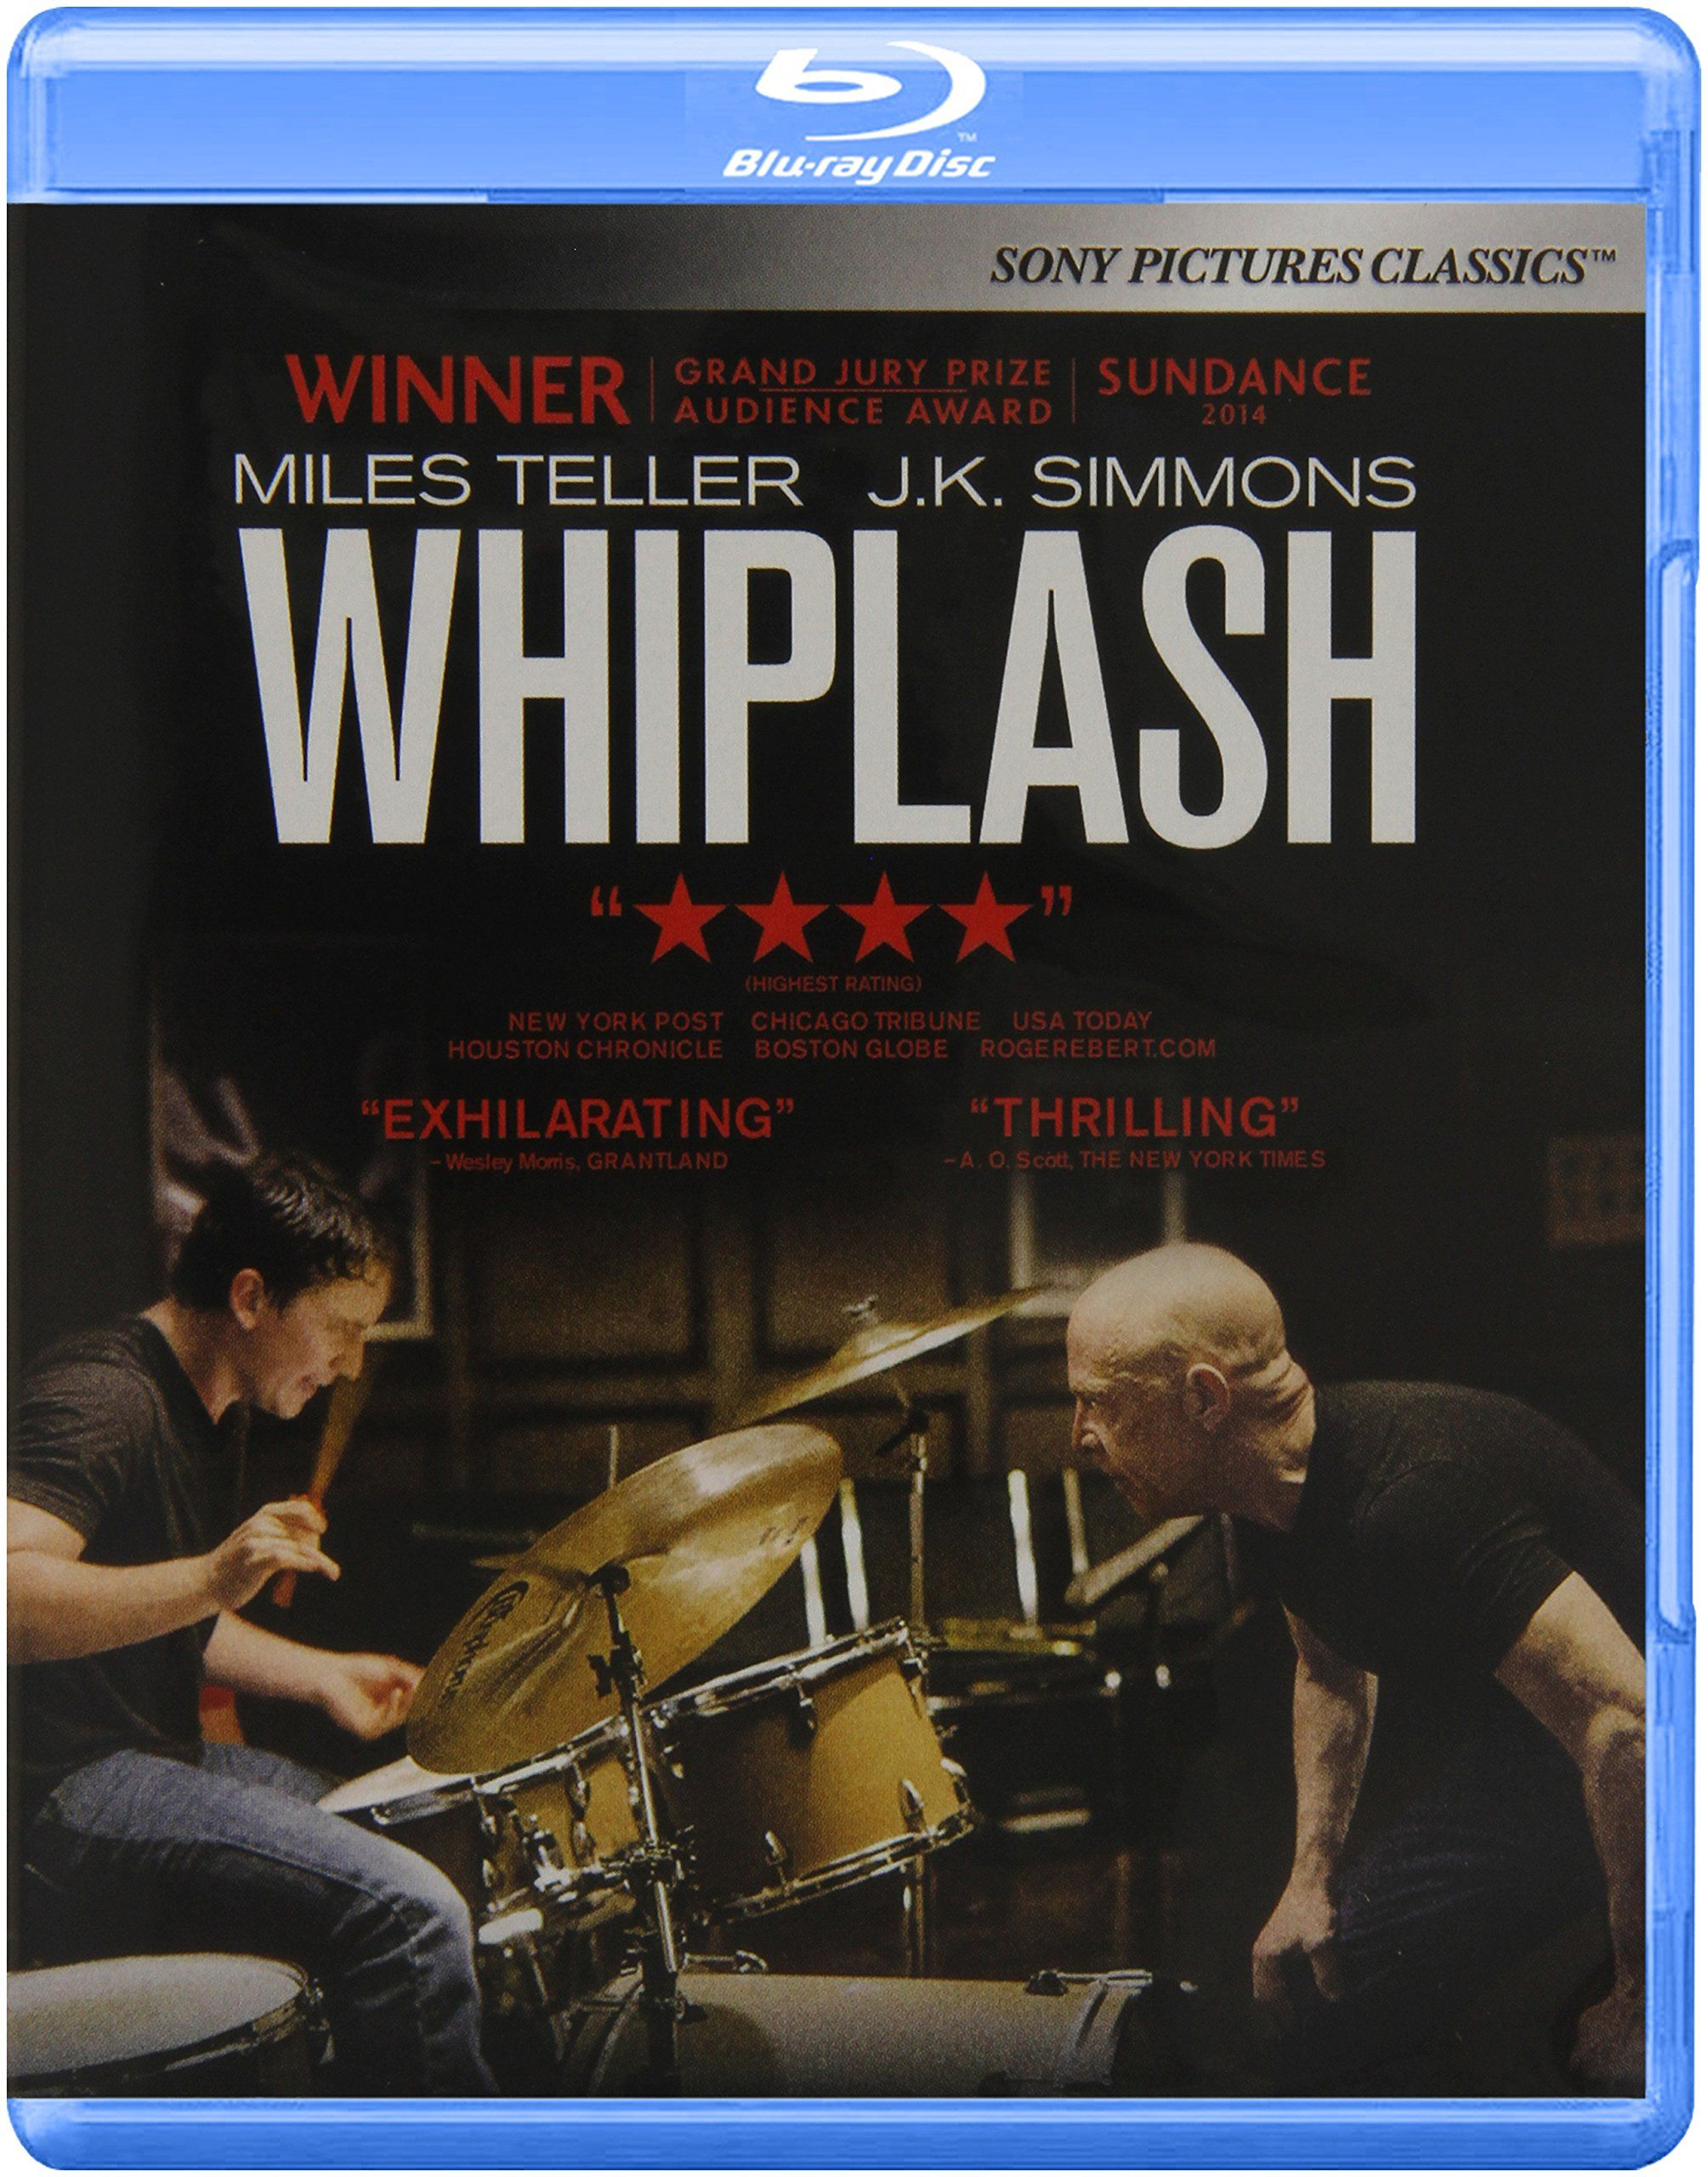 Whiplash Blu Ray Miles Teller Whiplash Music Book